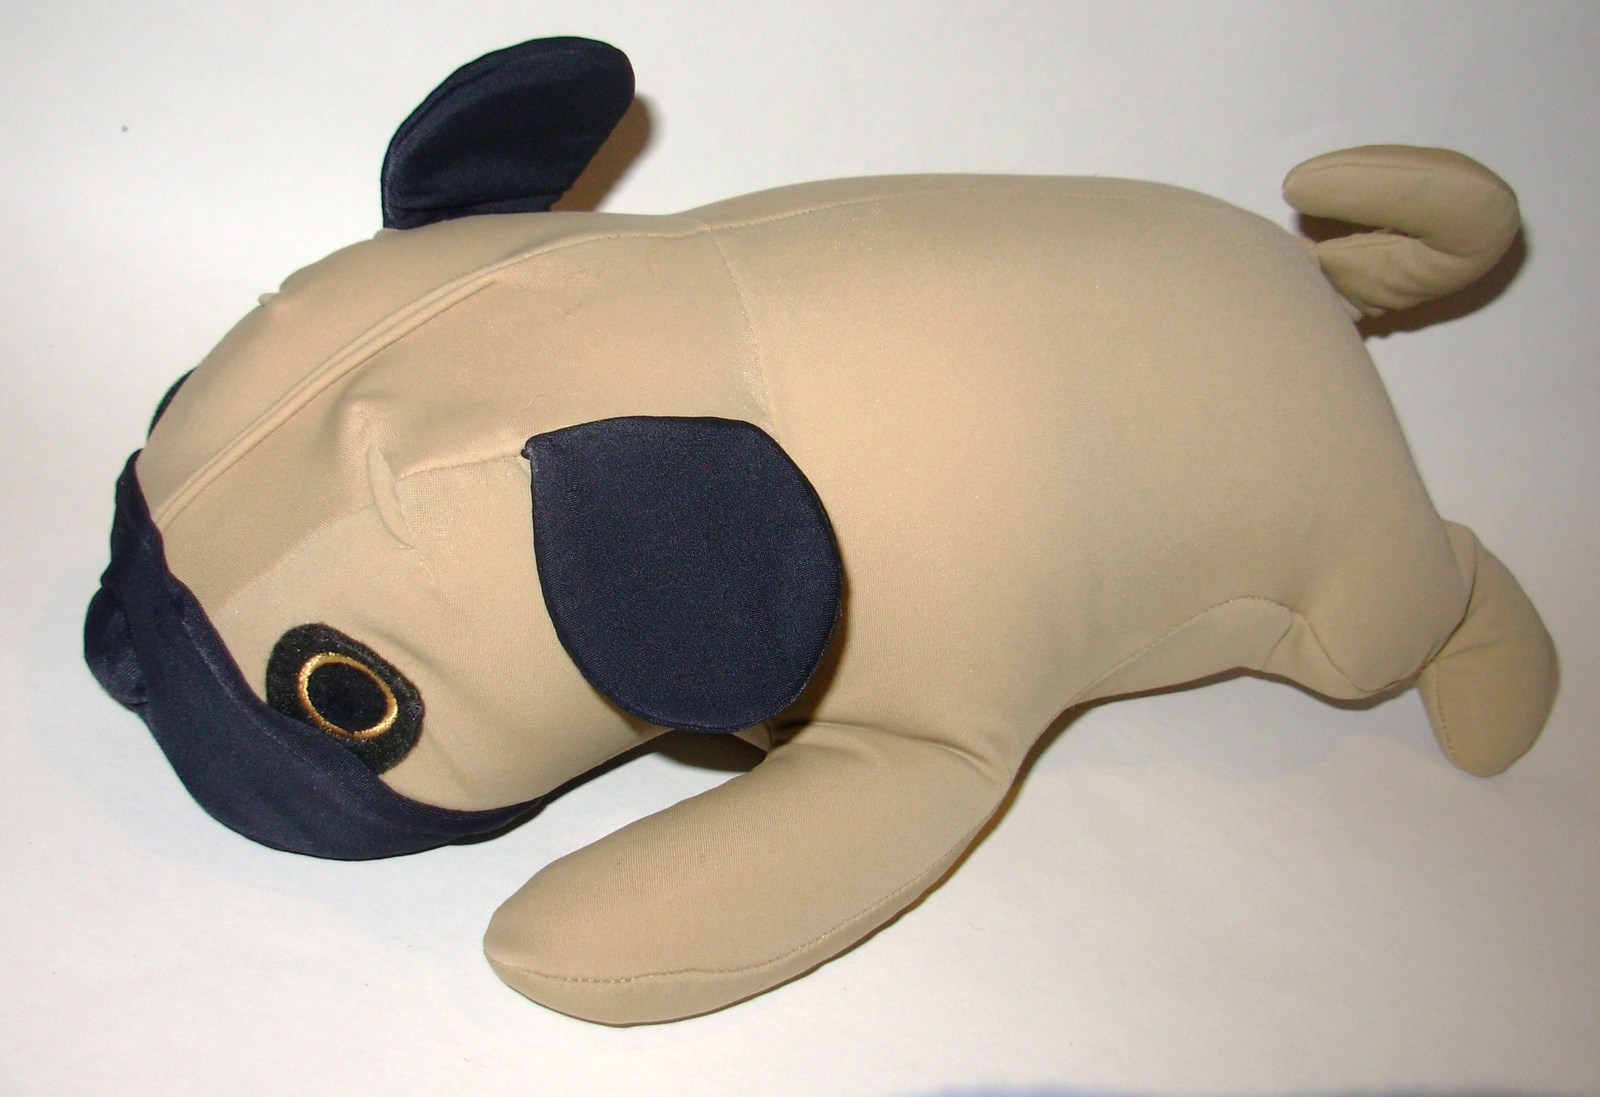 Animal Microbead Pillows : Mogu Dog Pug Puppy Plush Microbead Pillow Stuffed Animal Tan Brown - Other